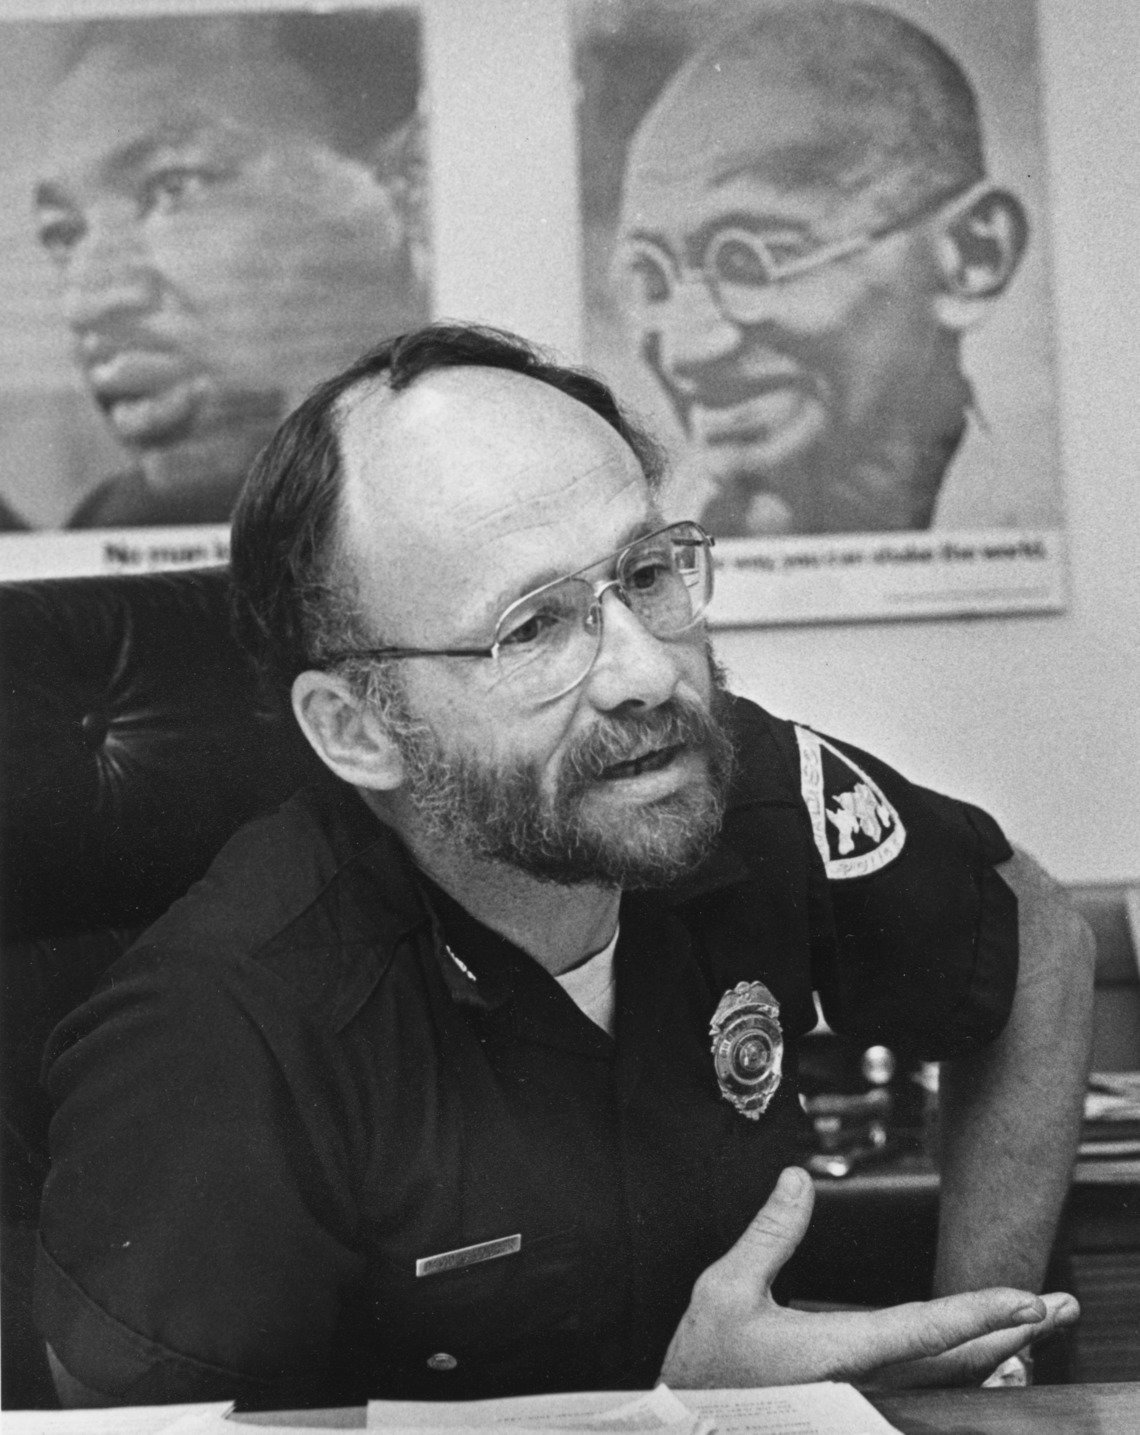 Former Madison Police Chief David Couper in his office with posters of Martin Luther King, Jr. and Mahatma Gandhi, in Wisconsin.